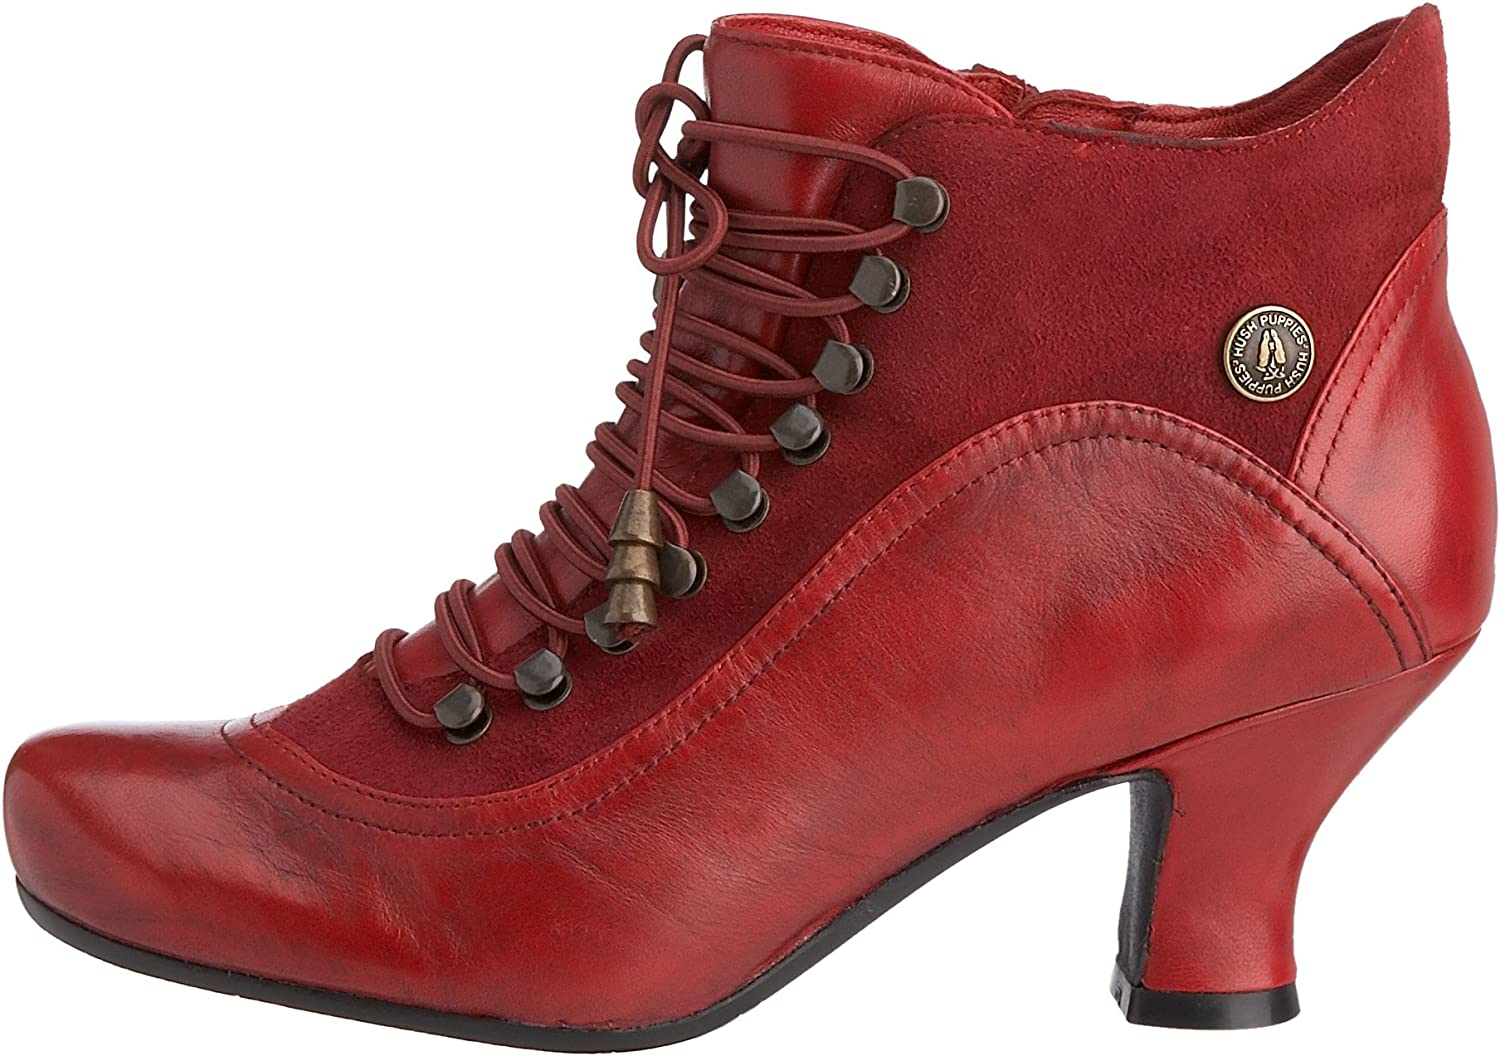 Vintage Boots, Retro Boots Hush Puppies Womens Vivianna Ankle Boots £73.97 AT vintagedancer.com